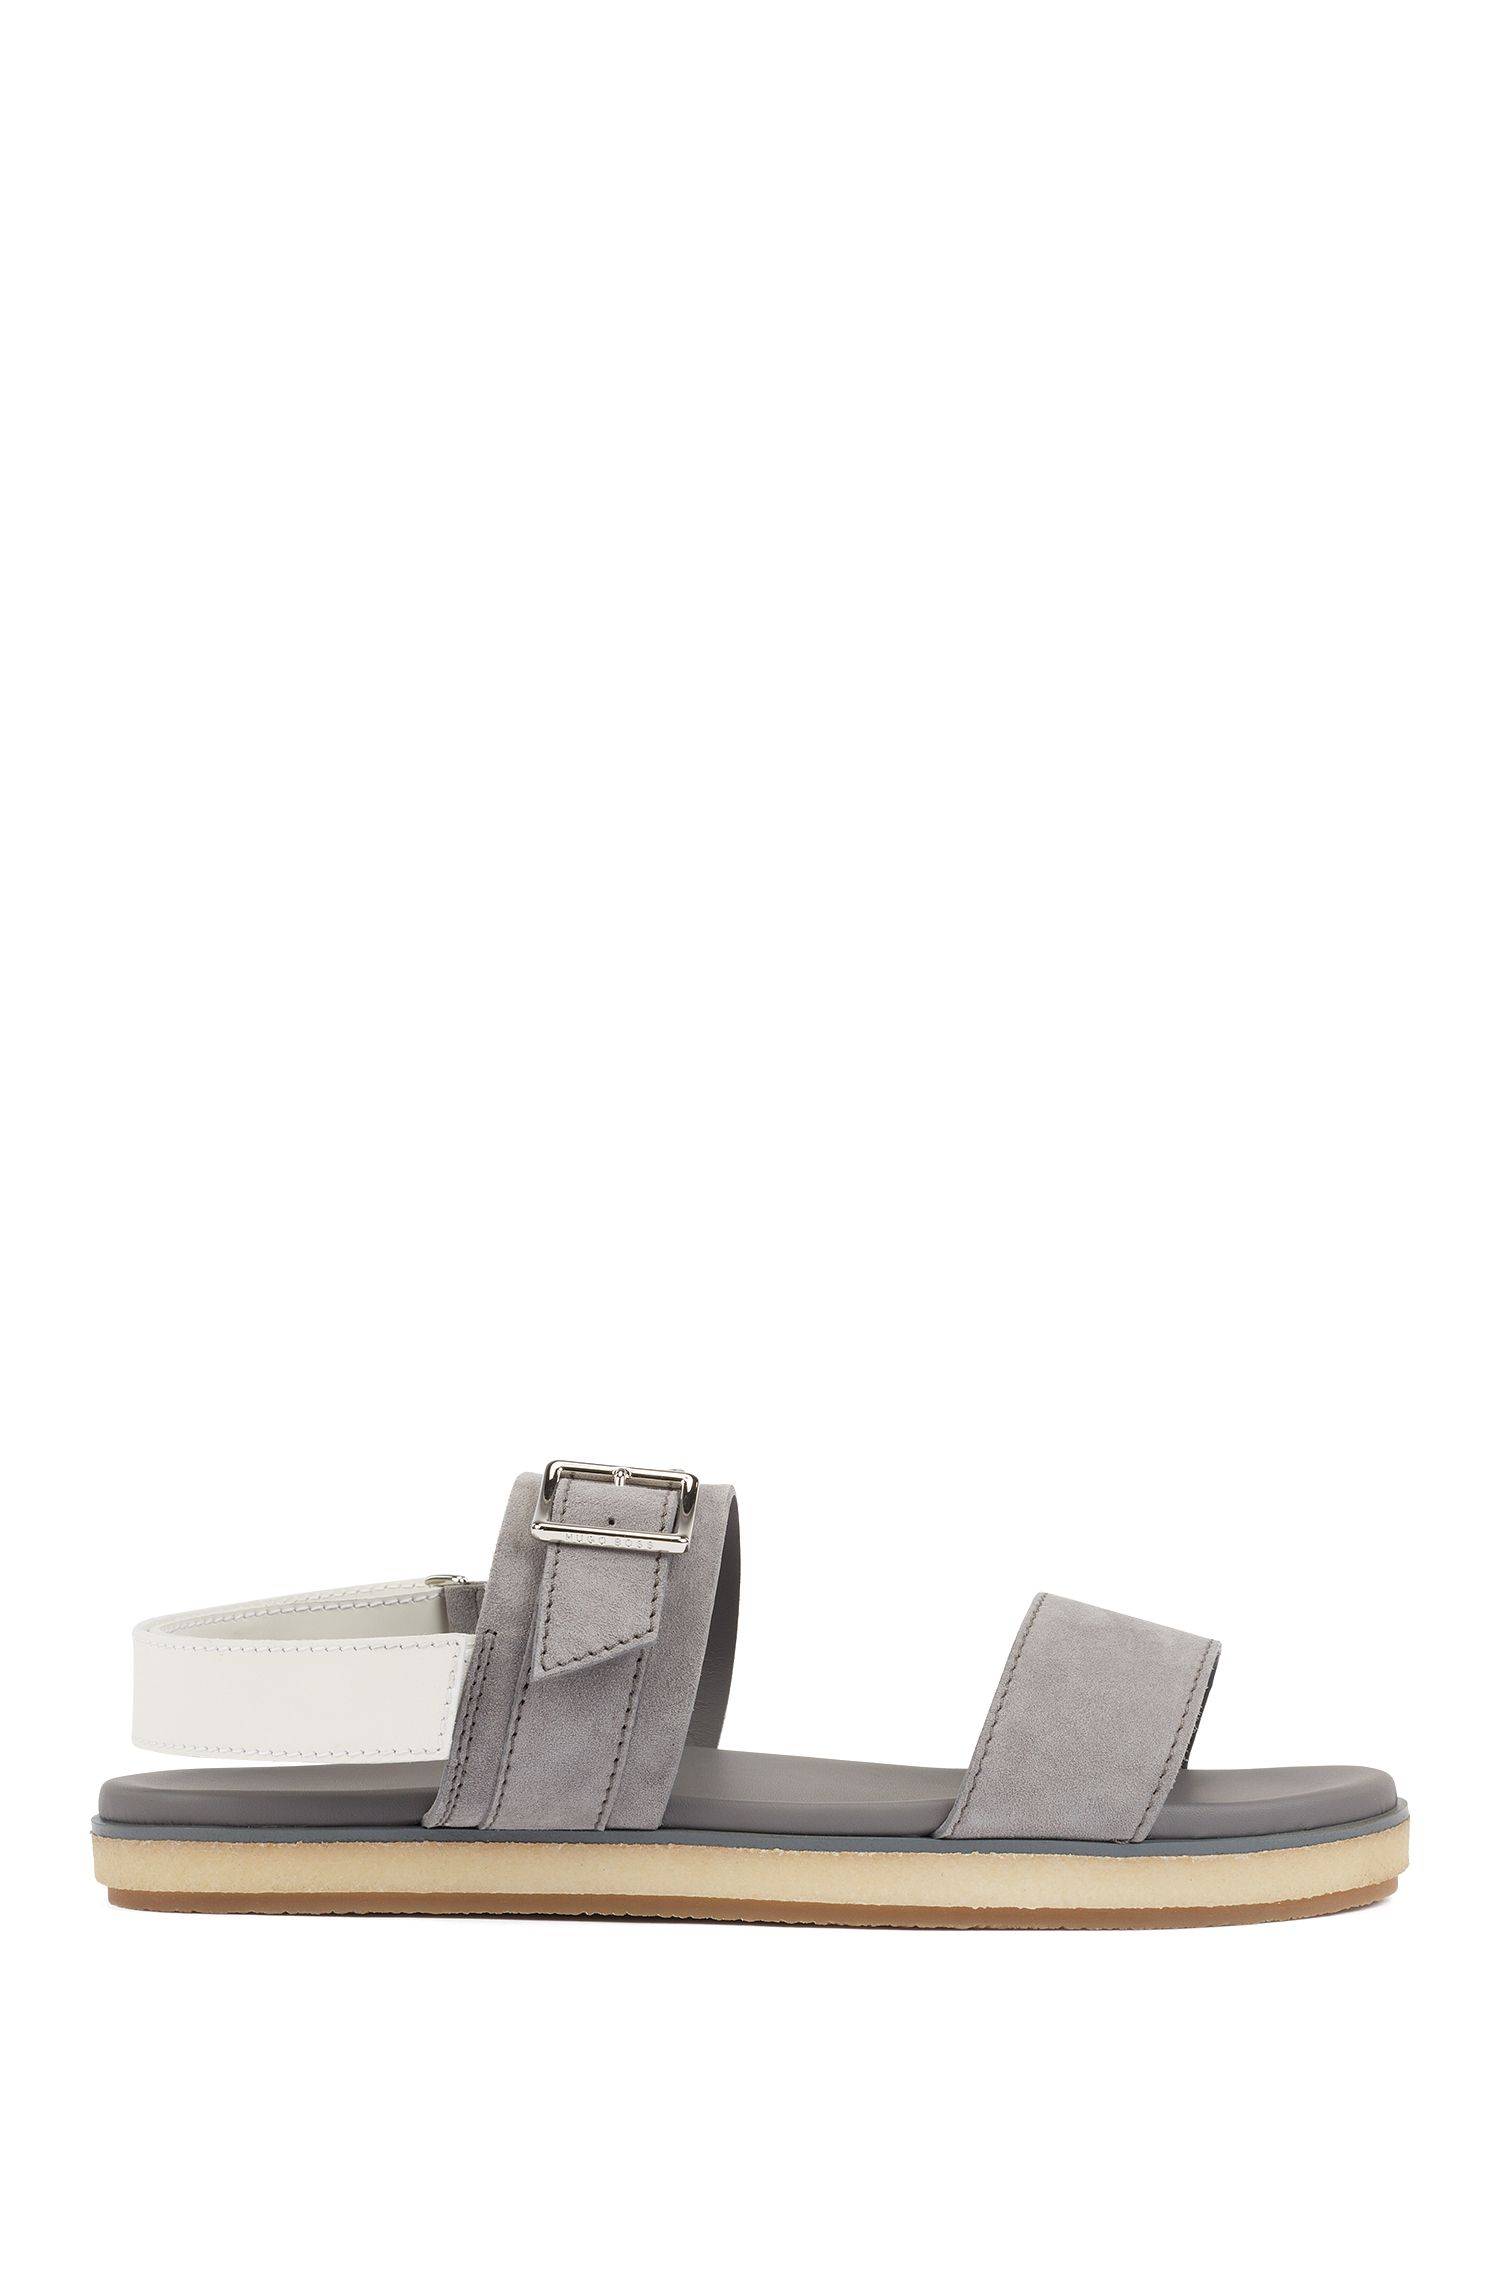 Sandals with suede straps and touch-fastening closure, Grau